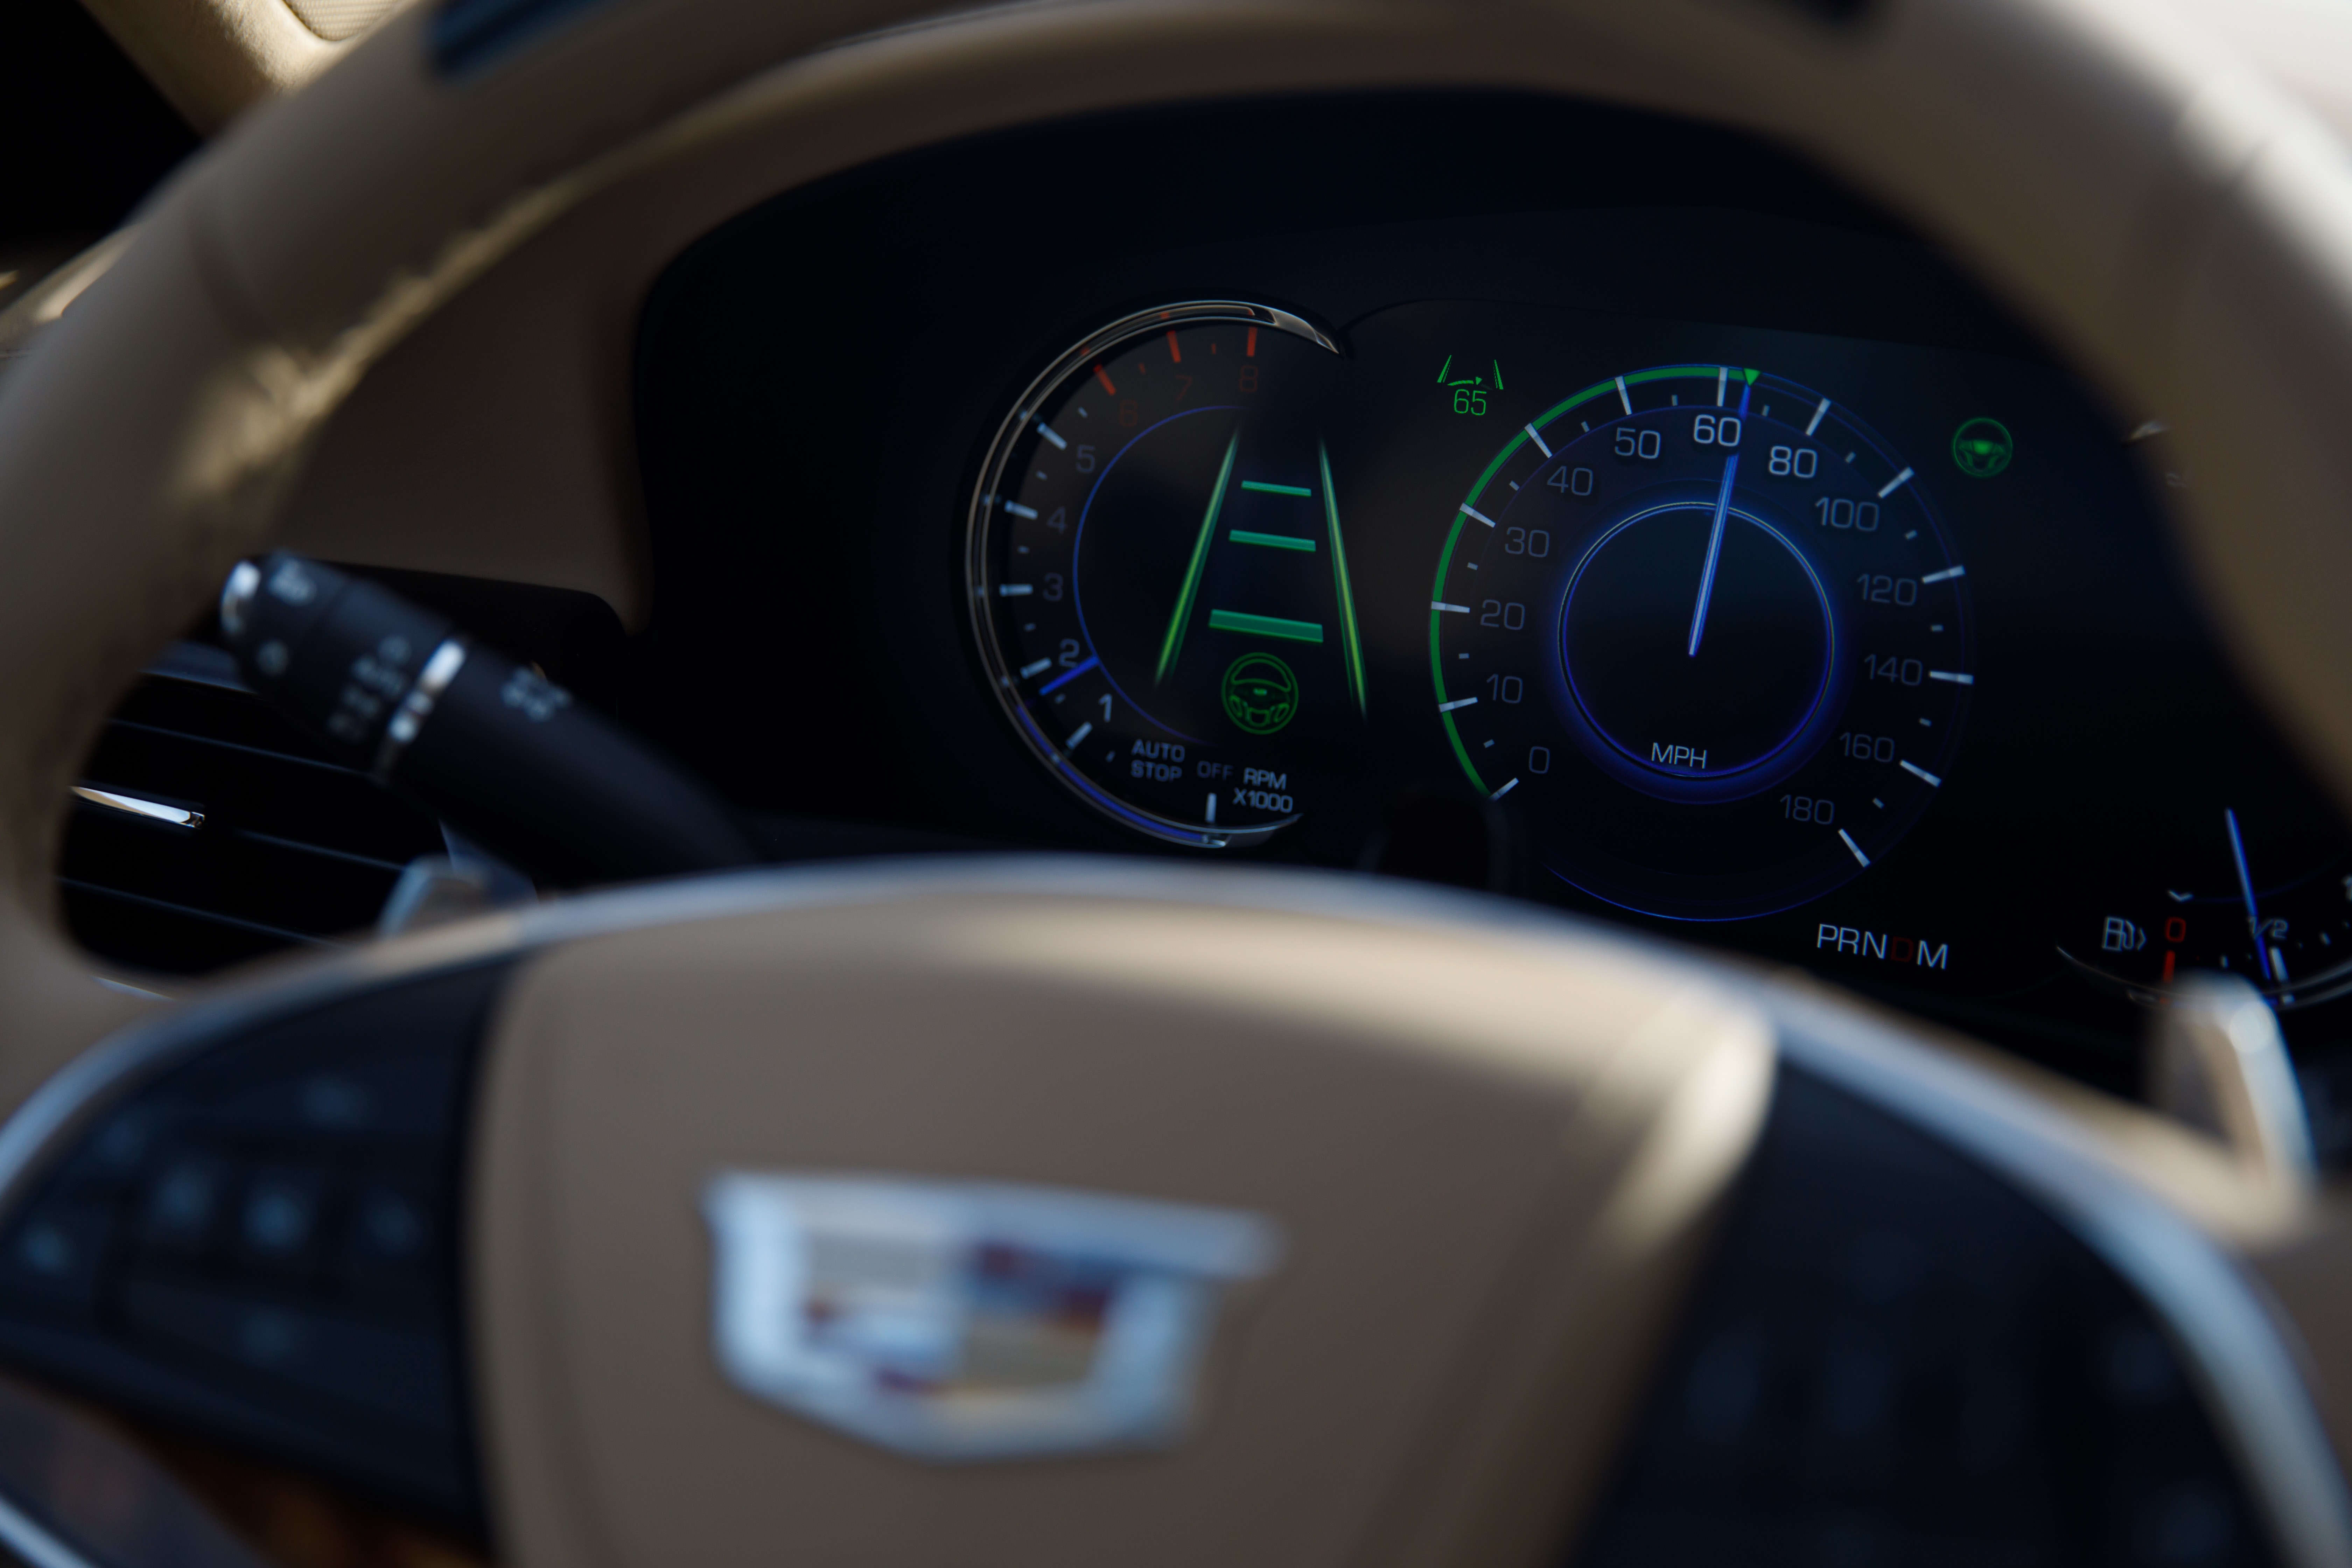 Cadillac has a secret weapon in its quest to beat Tesla at self-driving